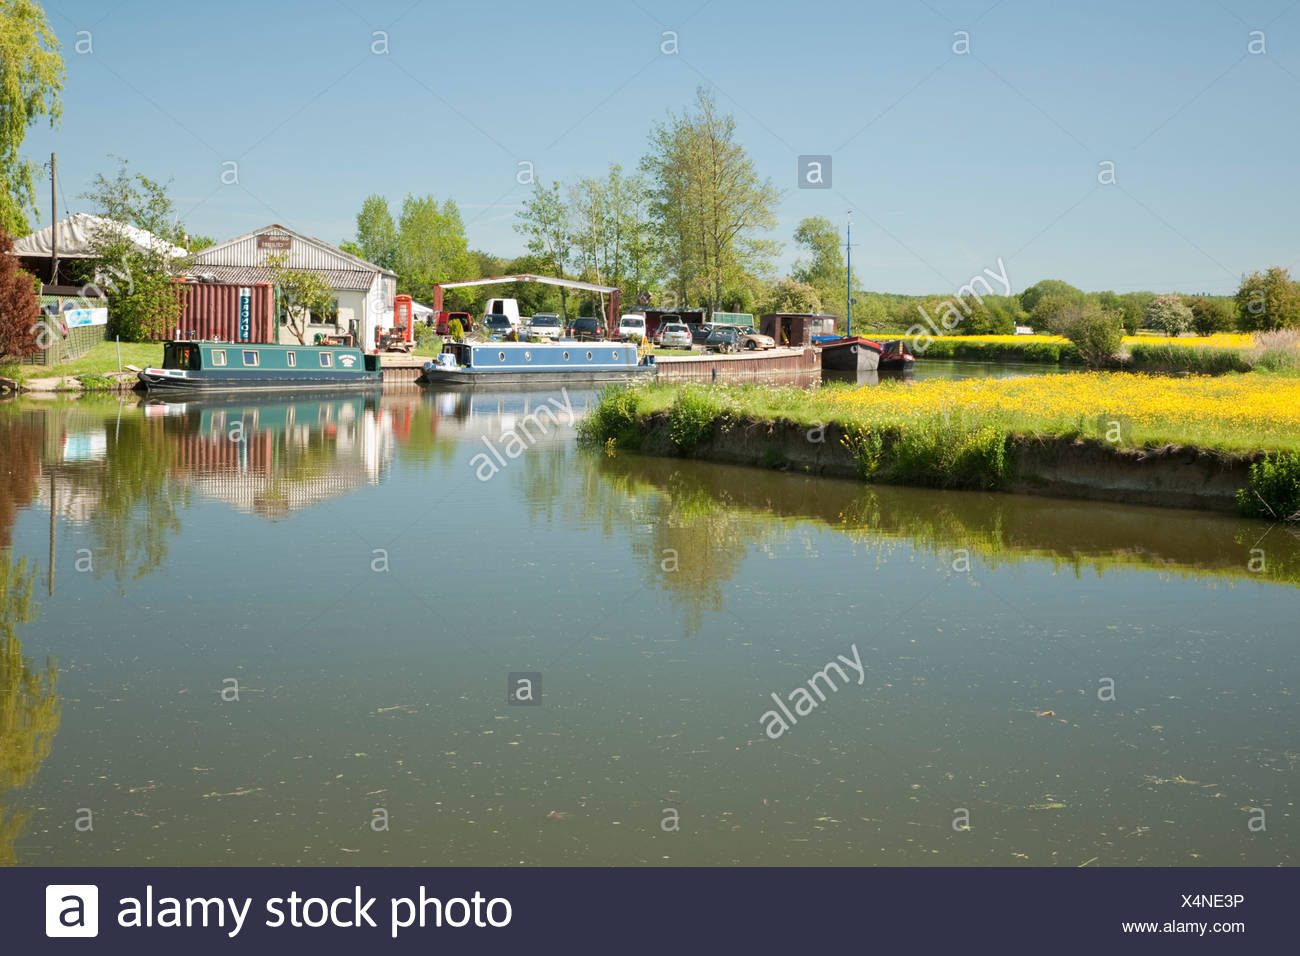 Boatyard on the River Thames upstream of Oxford Uk - Stock Image